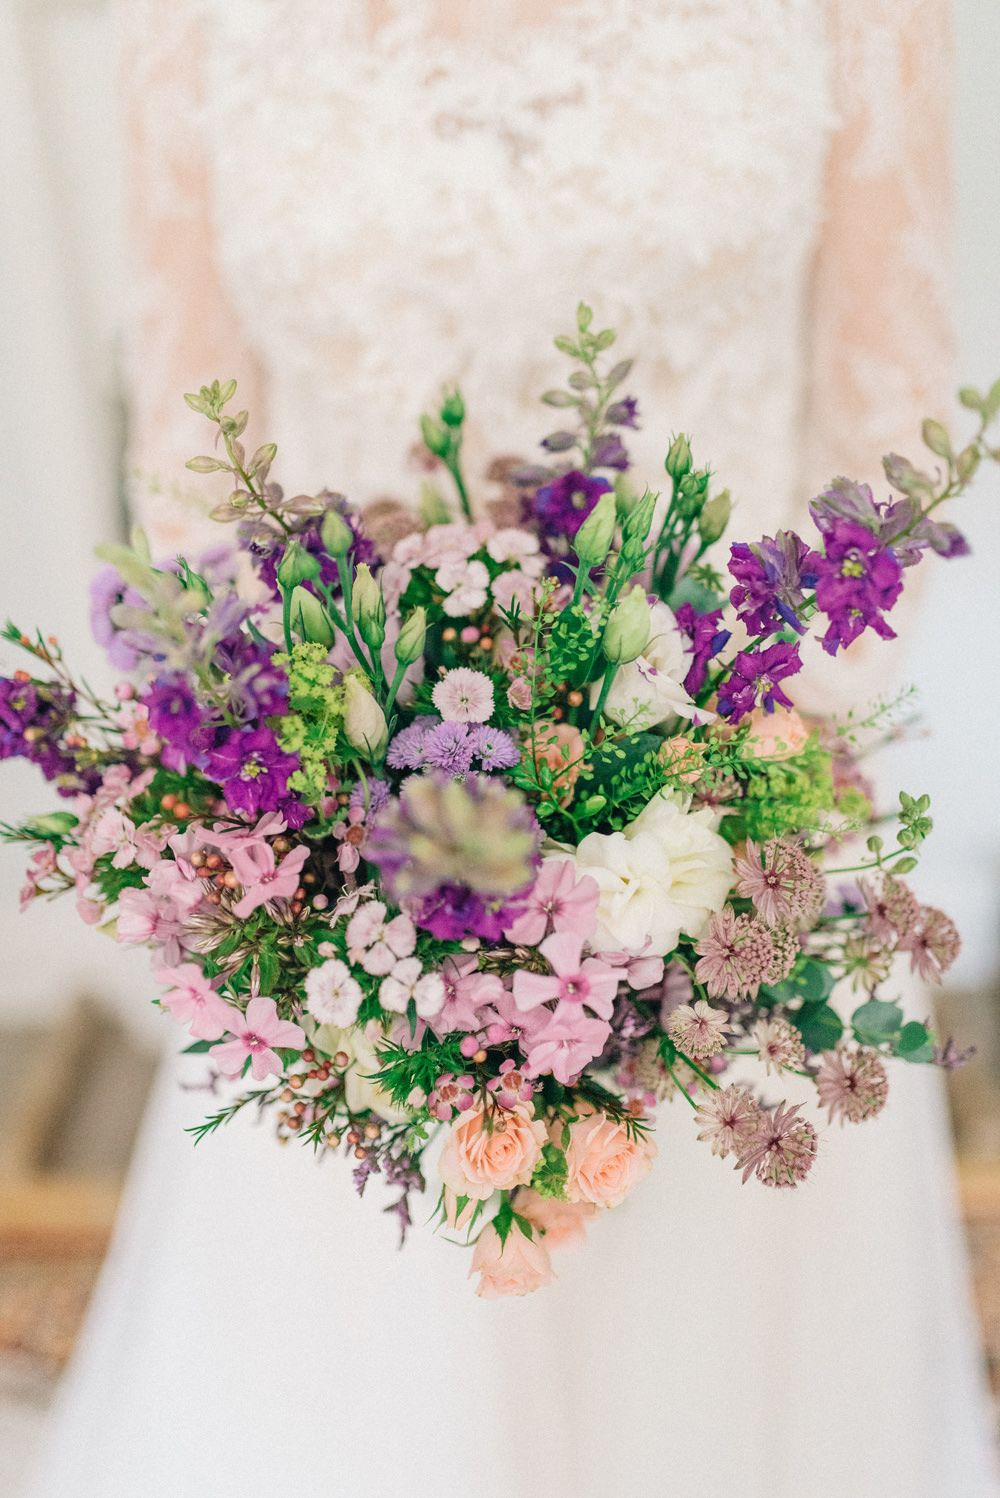 Wedding Bouquet Inspiration The 30 Best Bouquets From Real